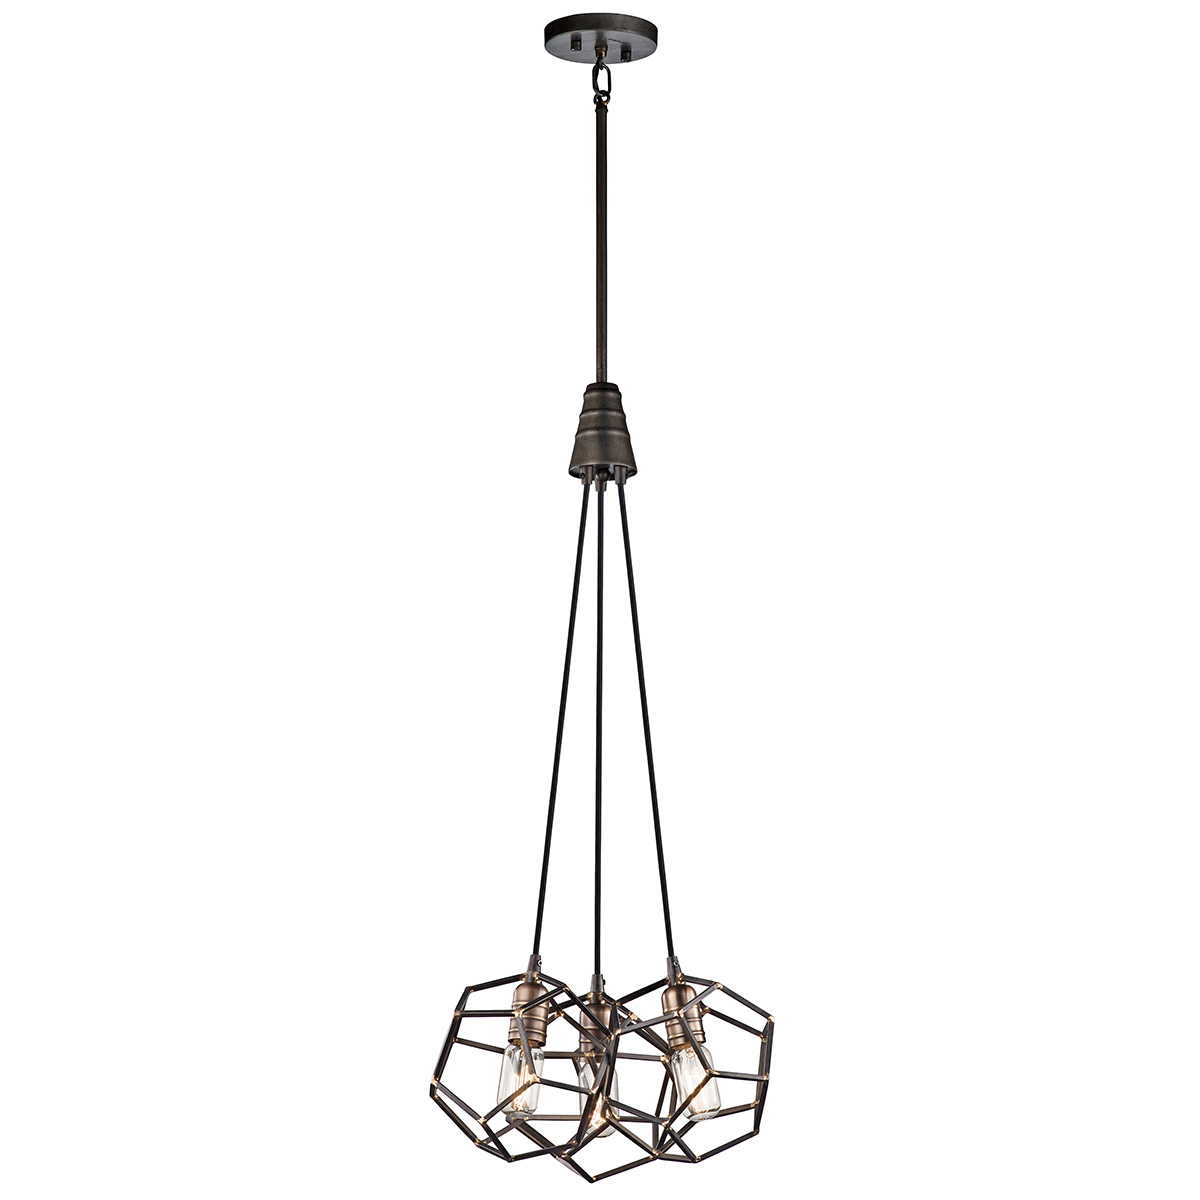 Primary image for Kichler 43717RS Rocklyn Pendants 18in Raw Steel STEEL 3-light